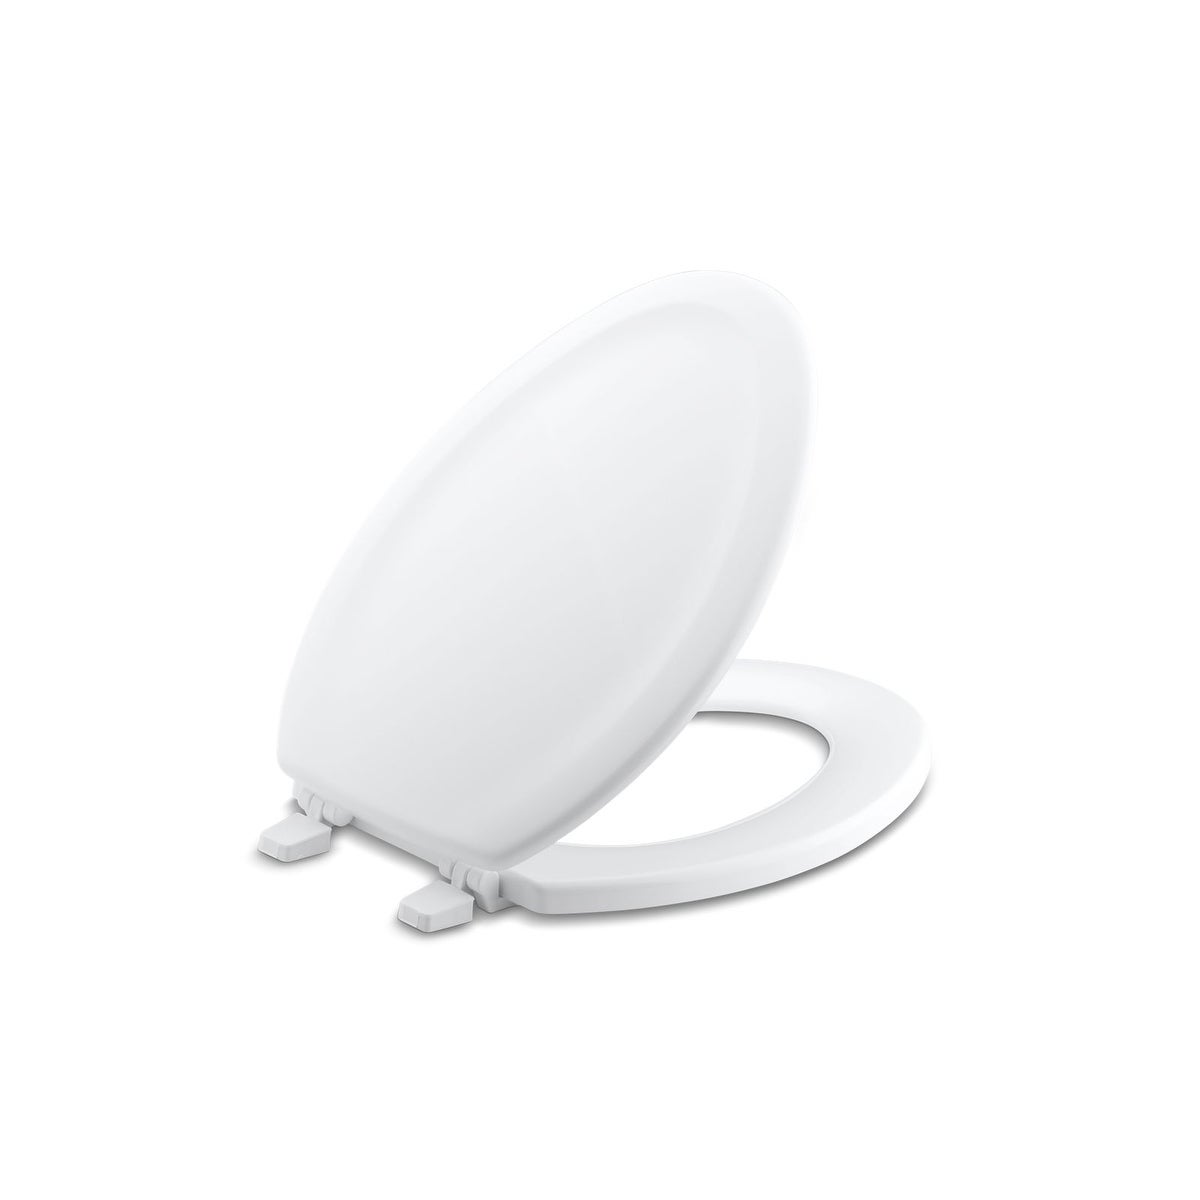 Magnificent Kohler Stonewood Wood Elongated Toilet Seat K 4814 0 White Machost Co Dining Chair Design Ideas Machostcouk